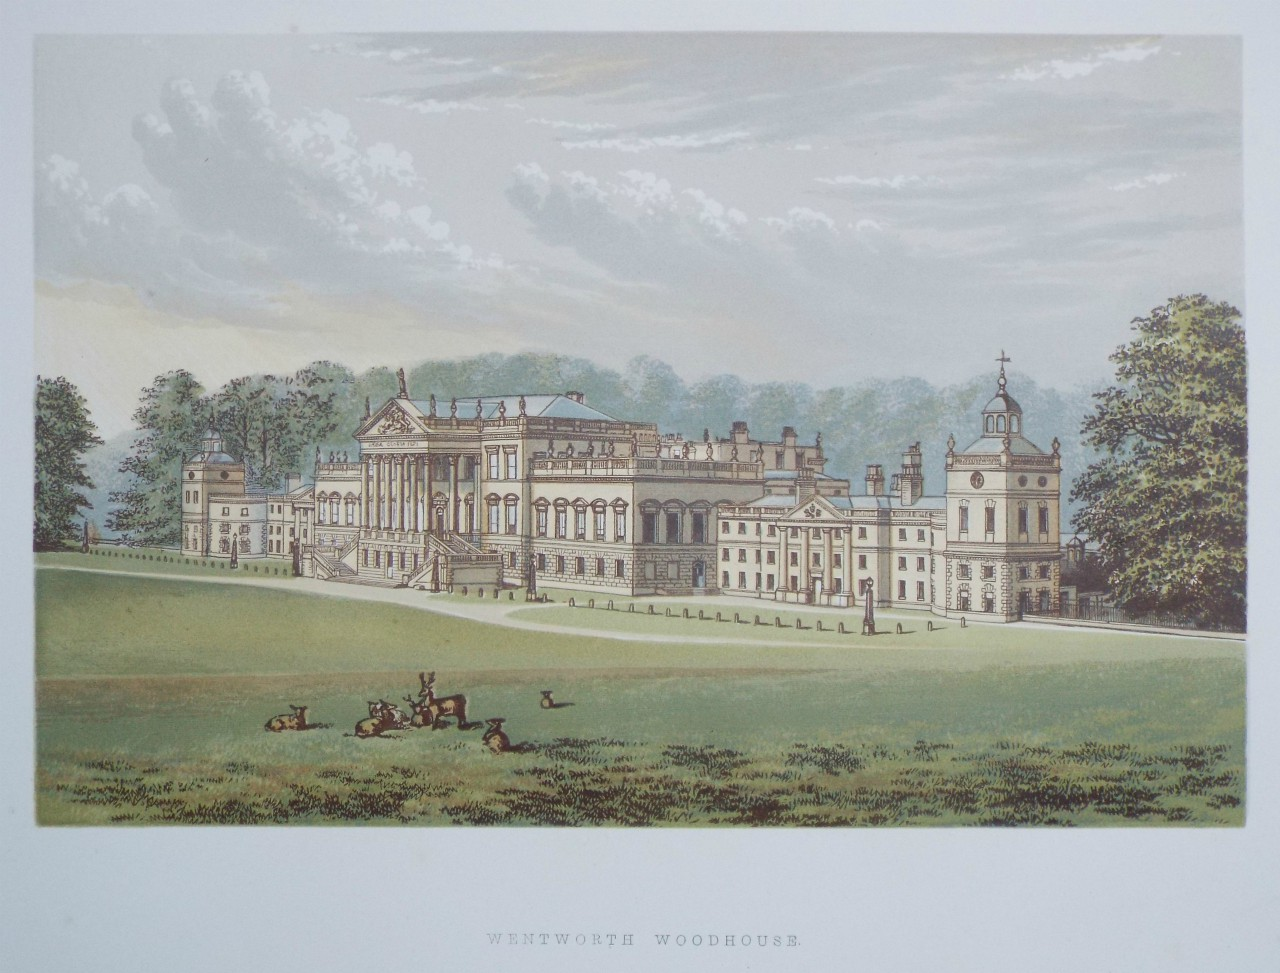 Chromo-lithograph - Wentworth Woodhouse.